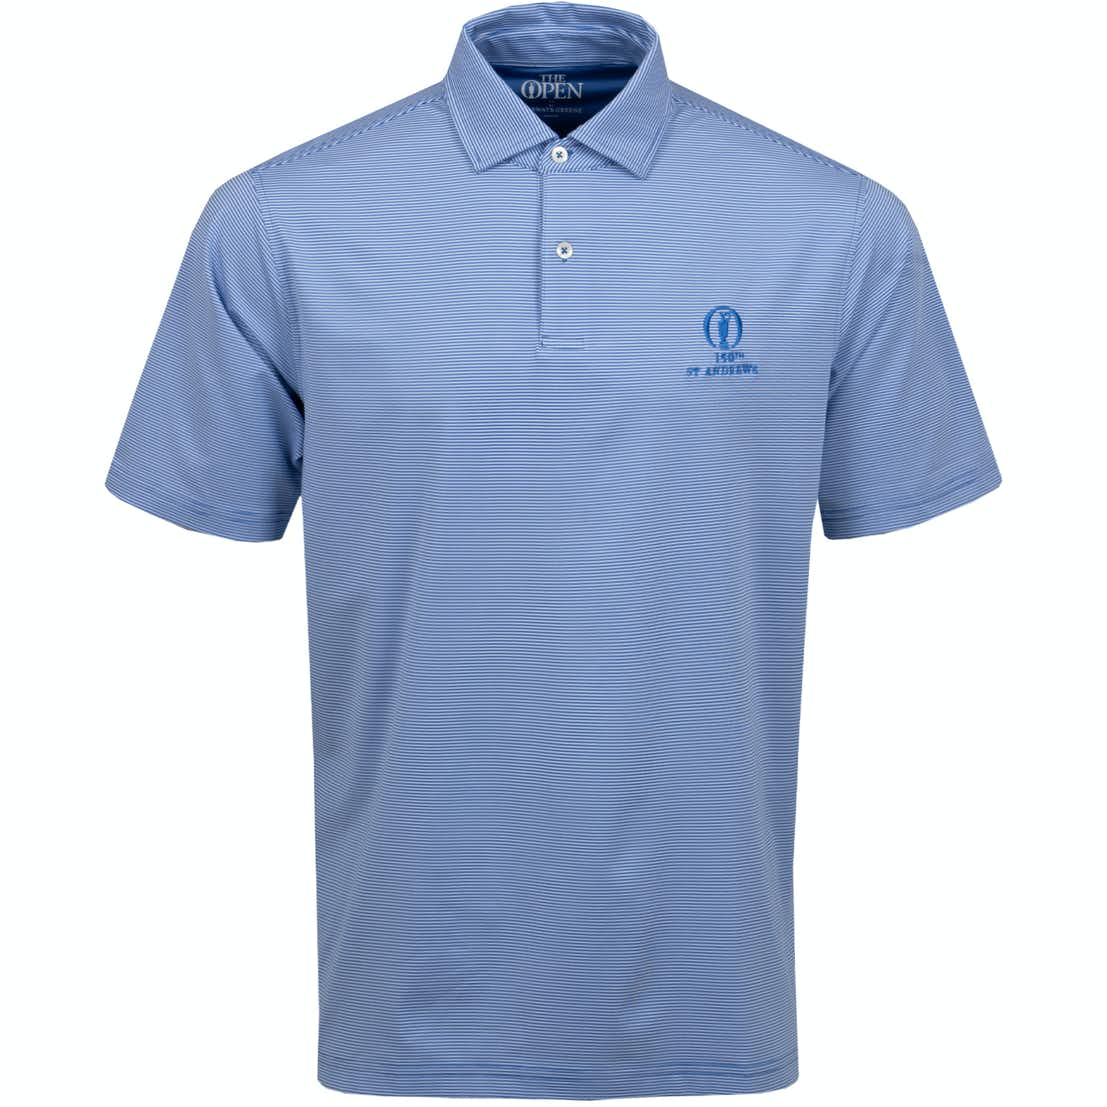 150th St Andrews Striped Polo Shirt - Blue and White